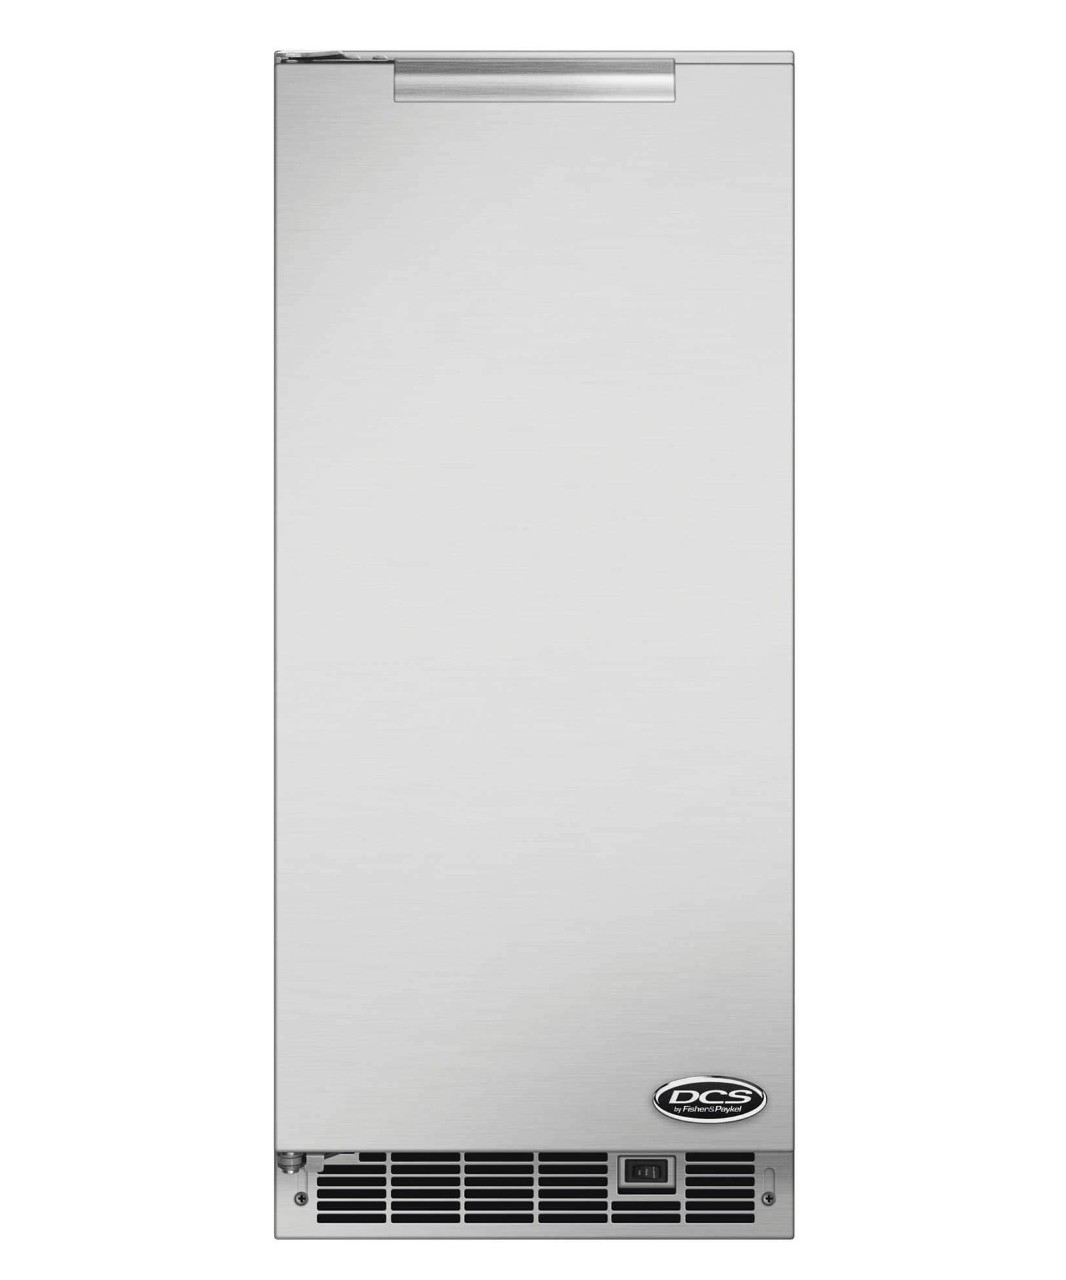 "DCS DISPLAY MODEL---15"" OUTDOOR CLEAR ICE MAKER"